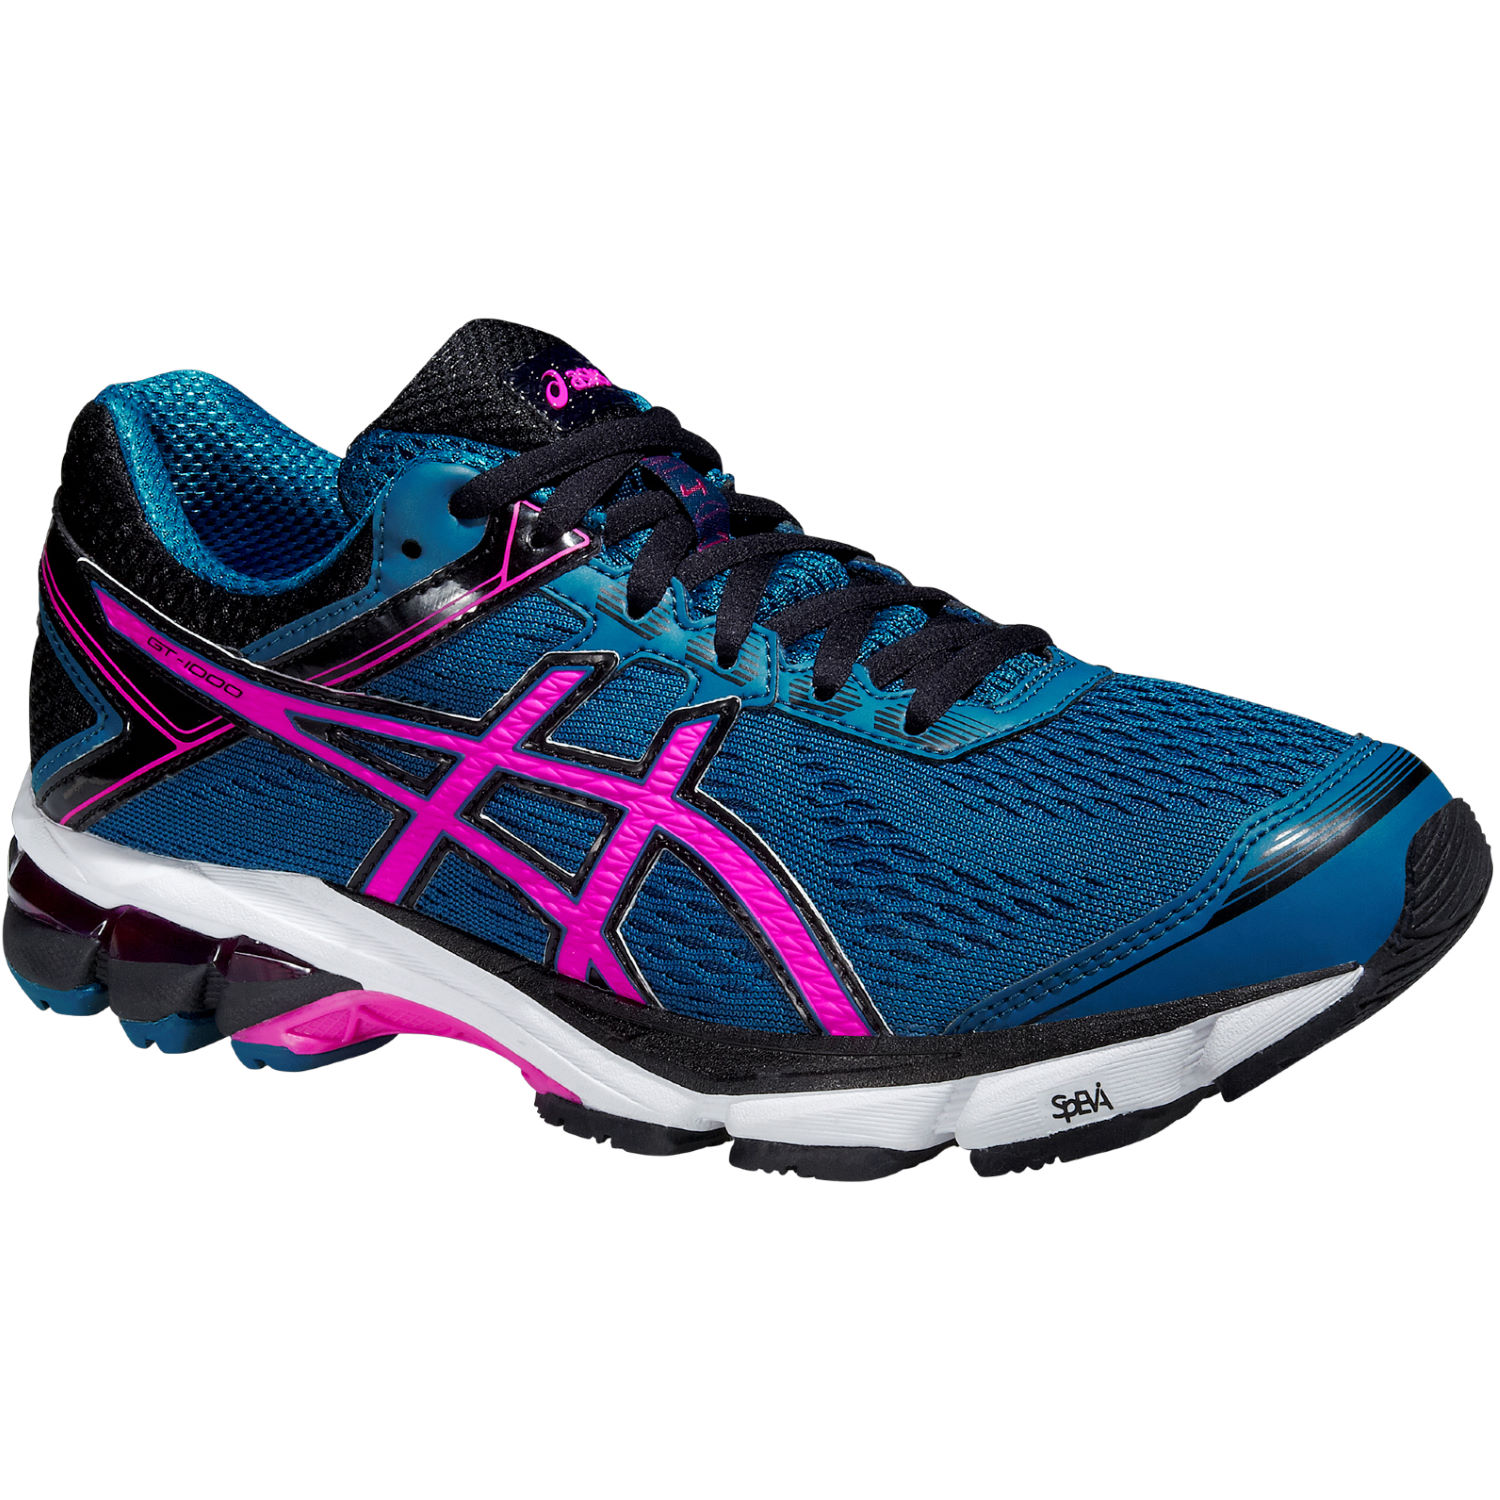 Wiggle Asics Women S Gt 1000 4 Shoes Aw15 Stability